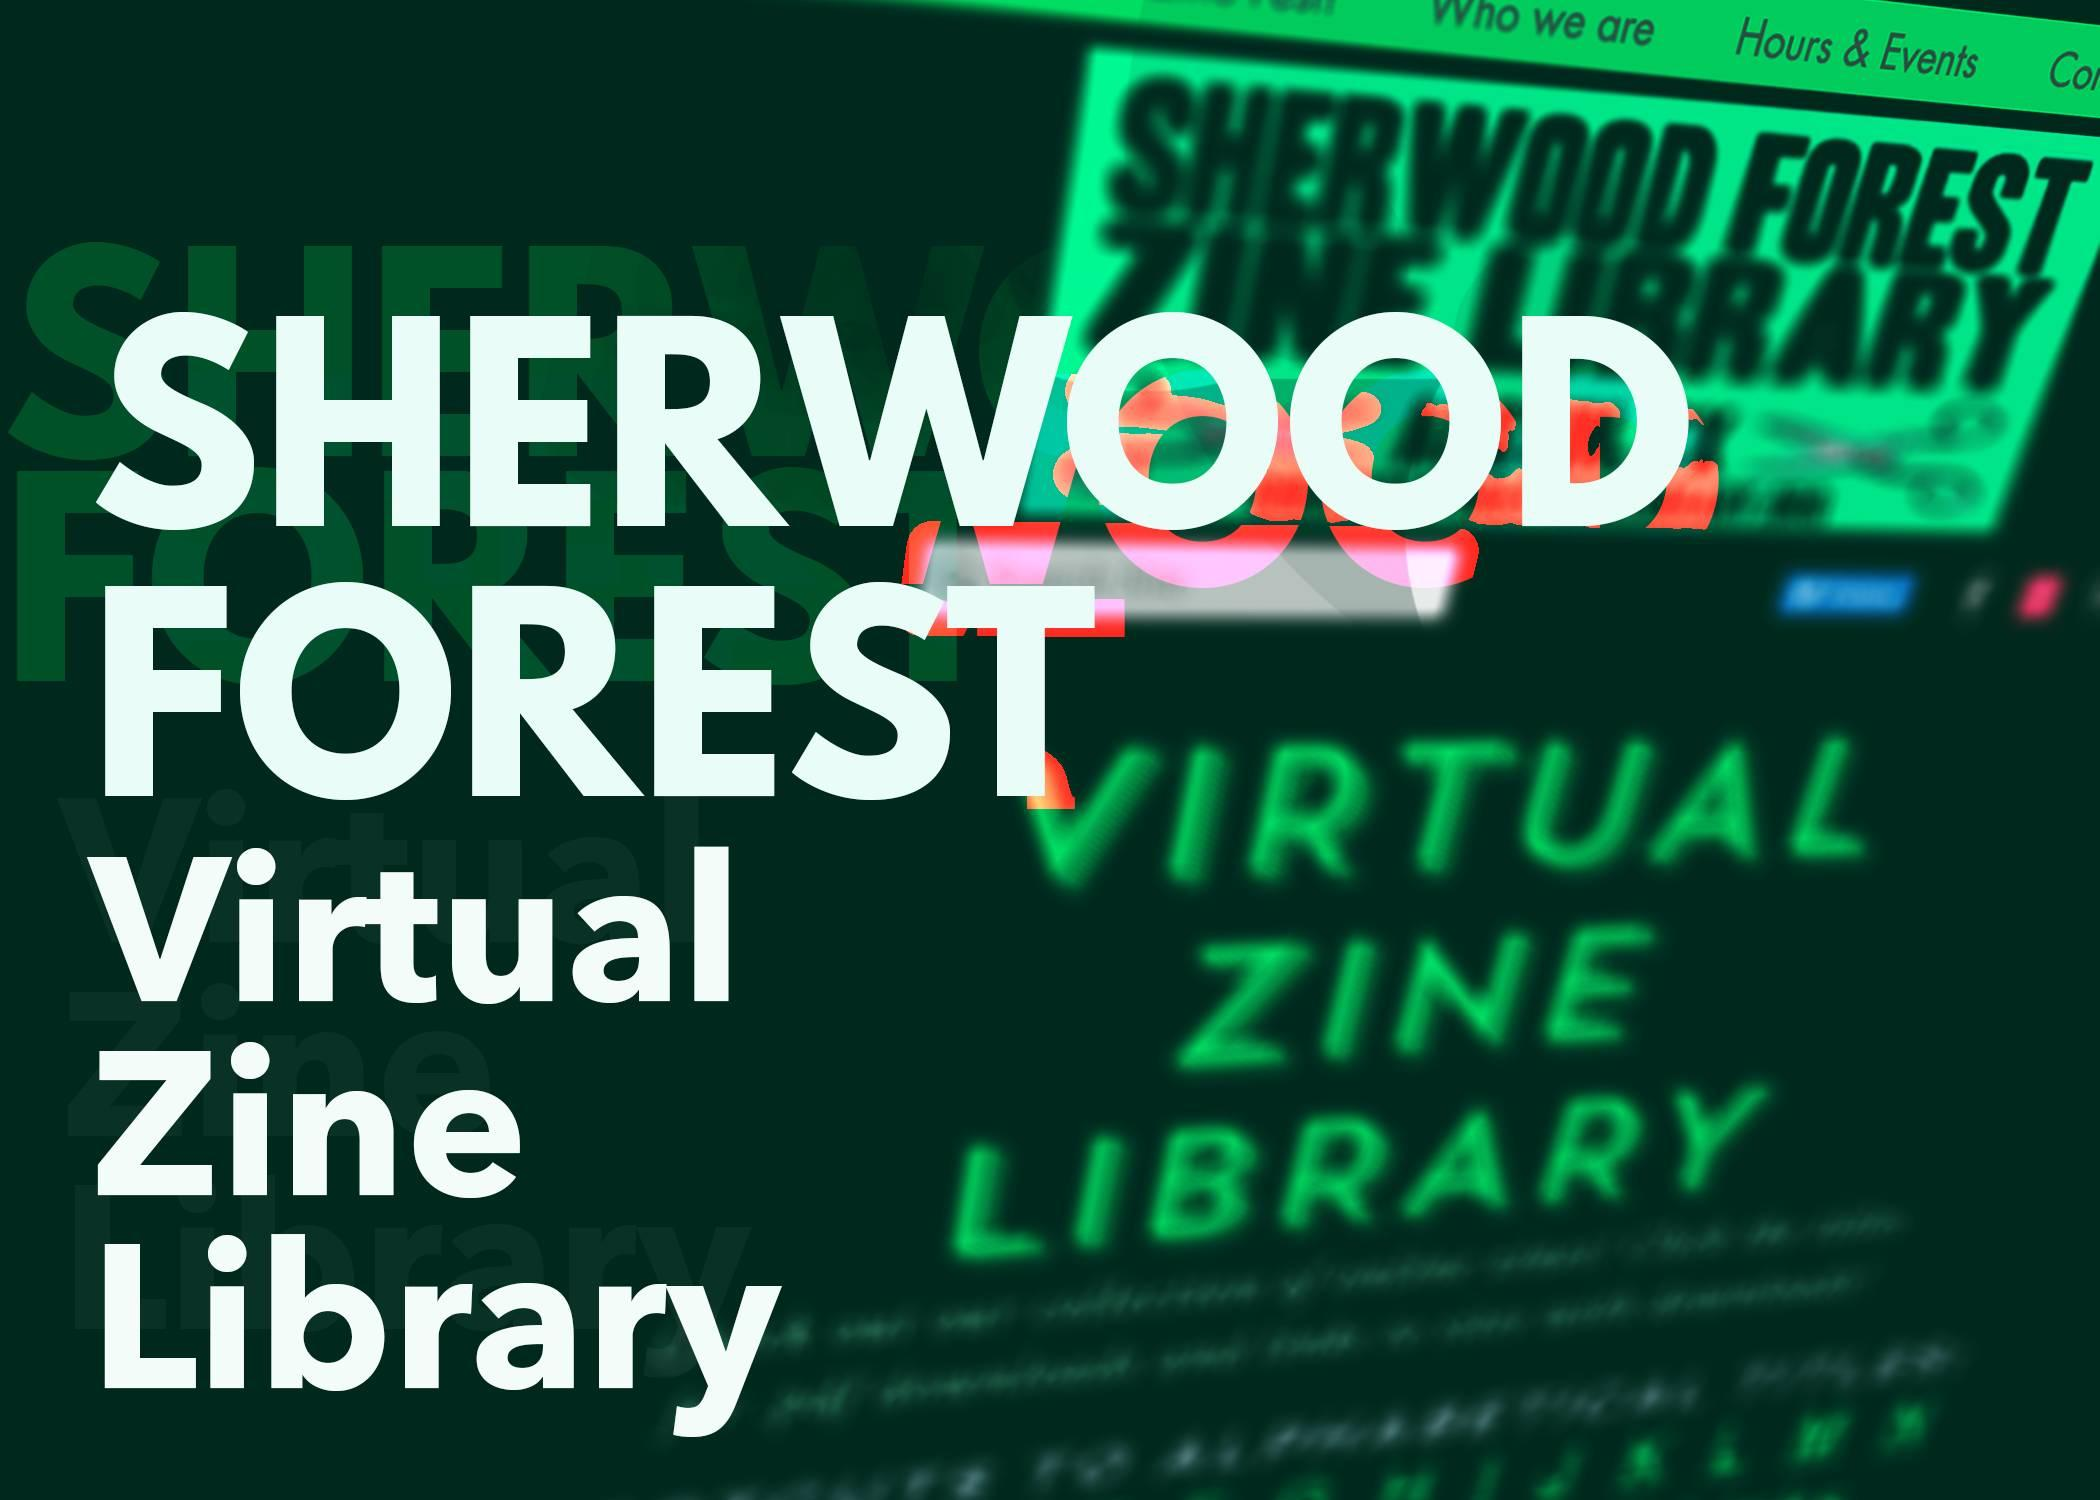 Sherwood Forest Virtual Zine Library